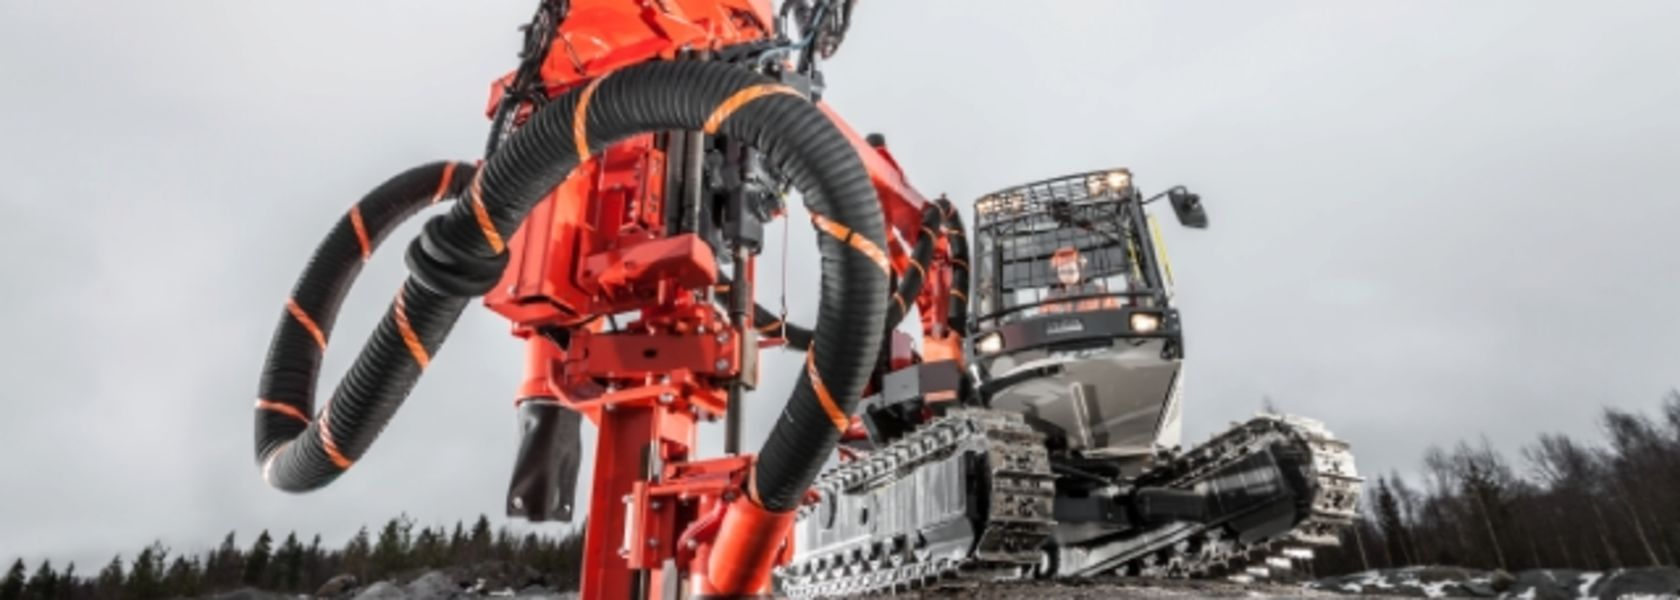 Sandvik opts for jet pulse dust collection system